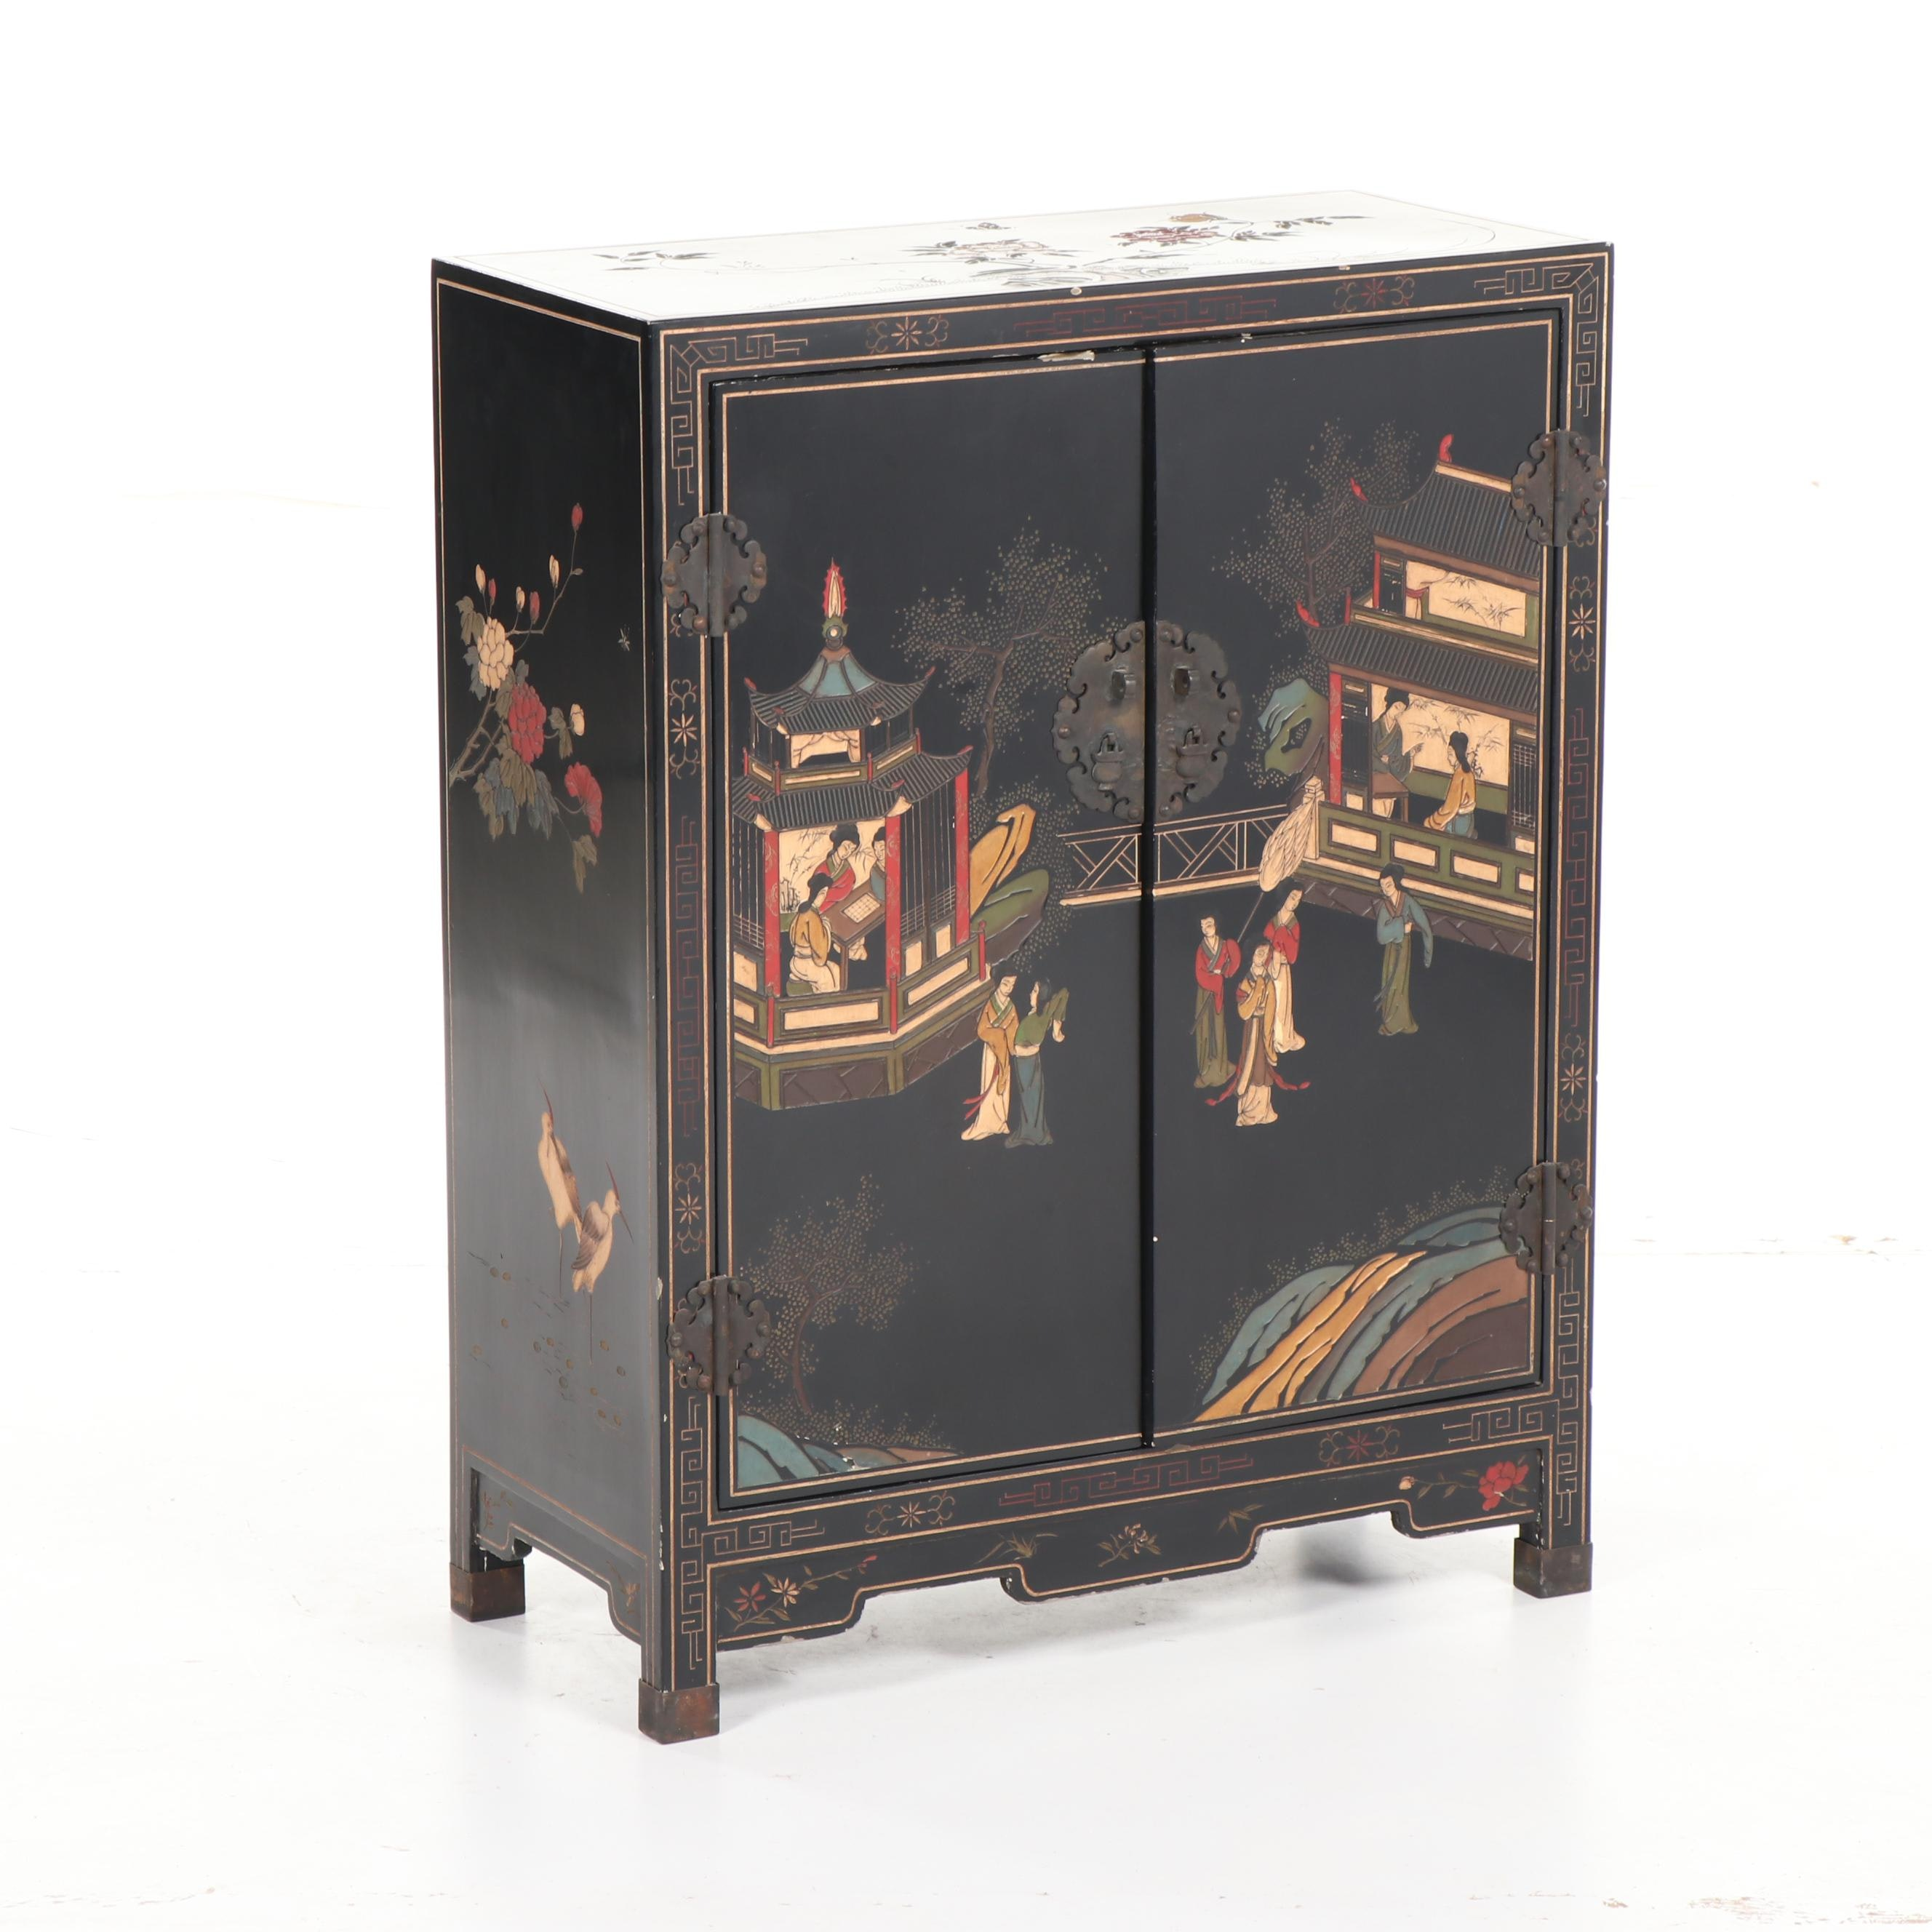 Chinese Black Lacquer Carved Wood Two-Door Cabinet, Mid-20th Century